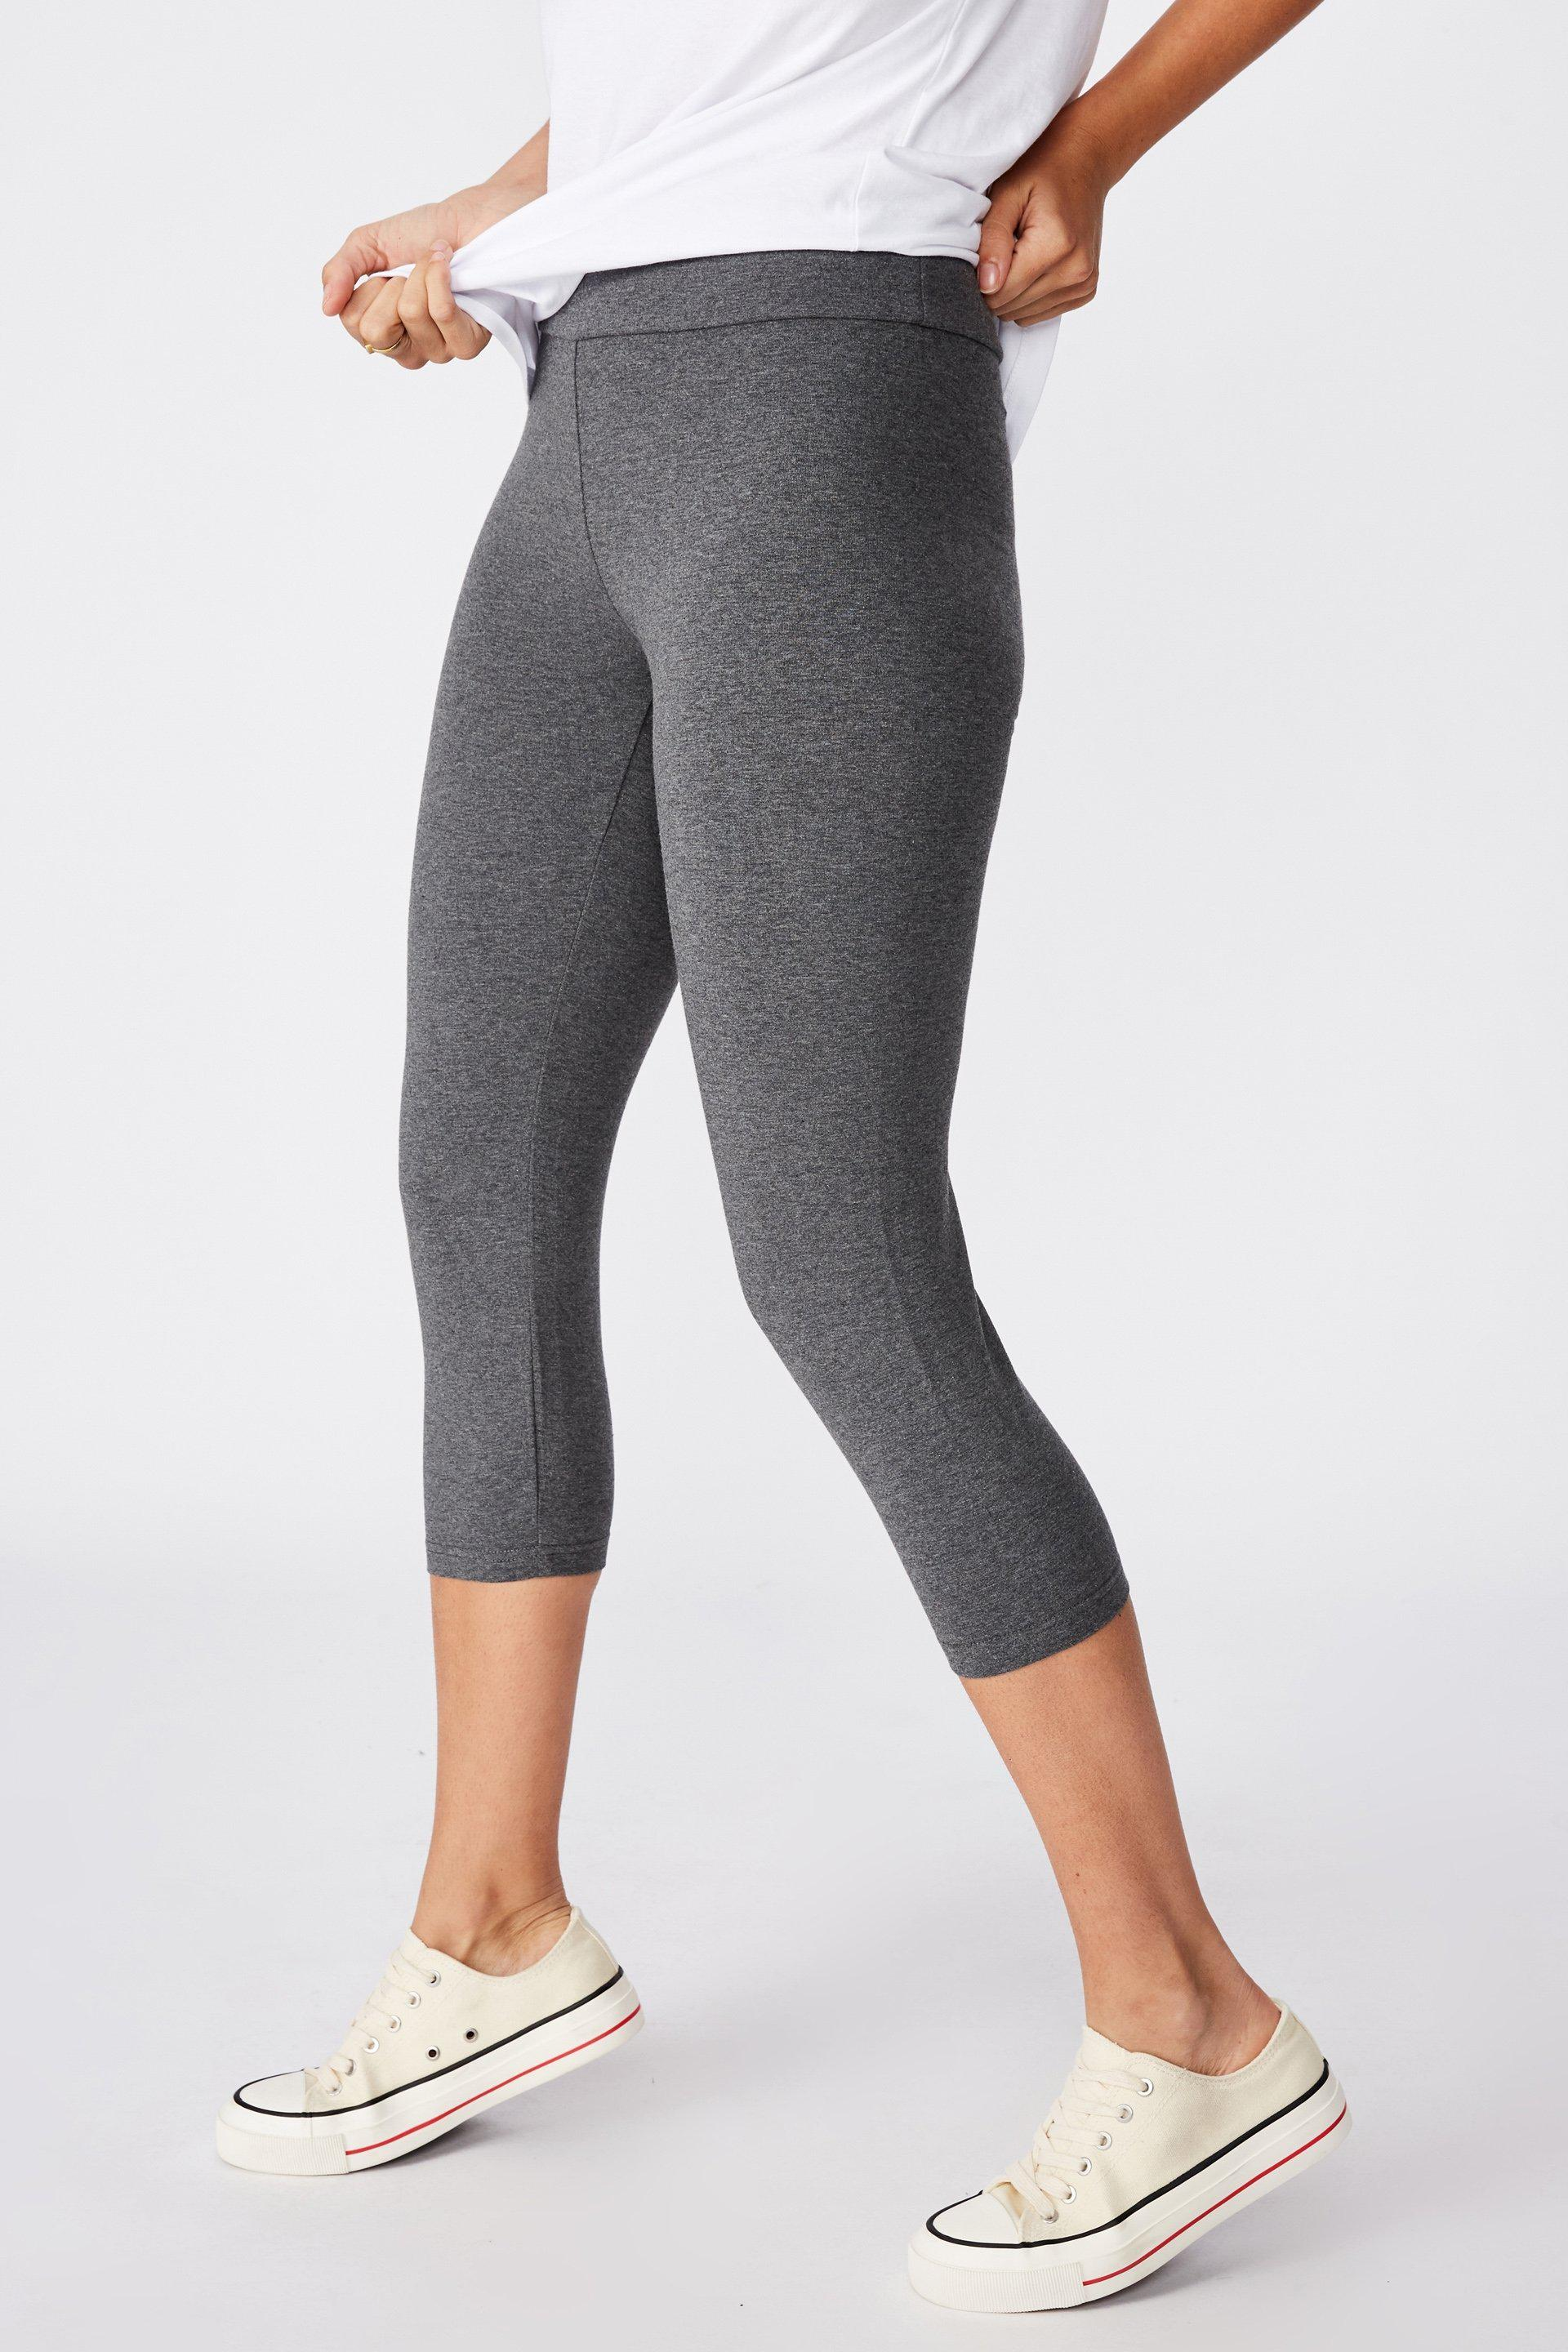 3 4 High Waisted Dylan Legging Charcoal Marle Cotton On Trousers Superbalist Com